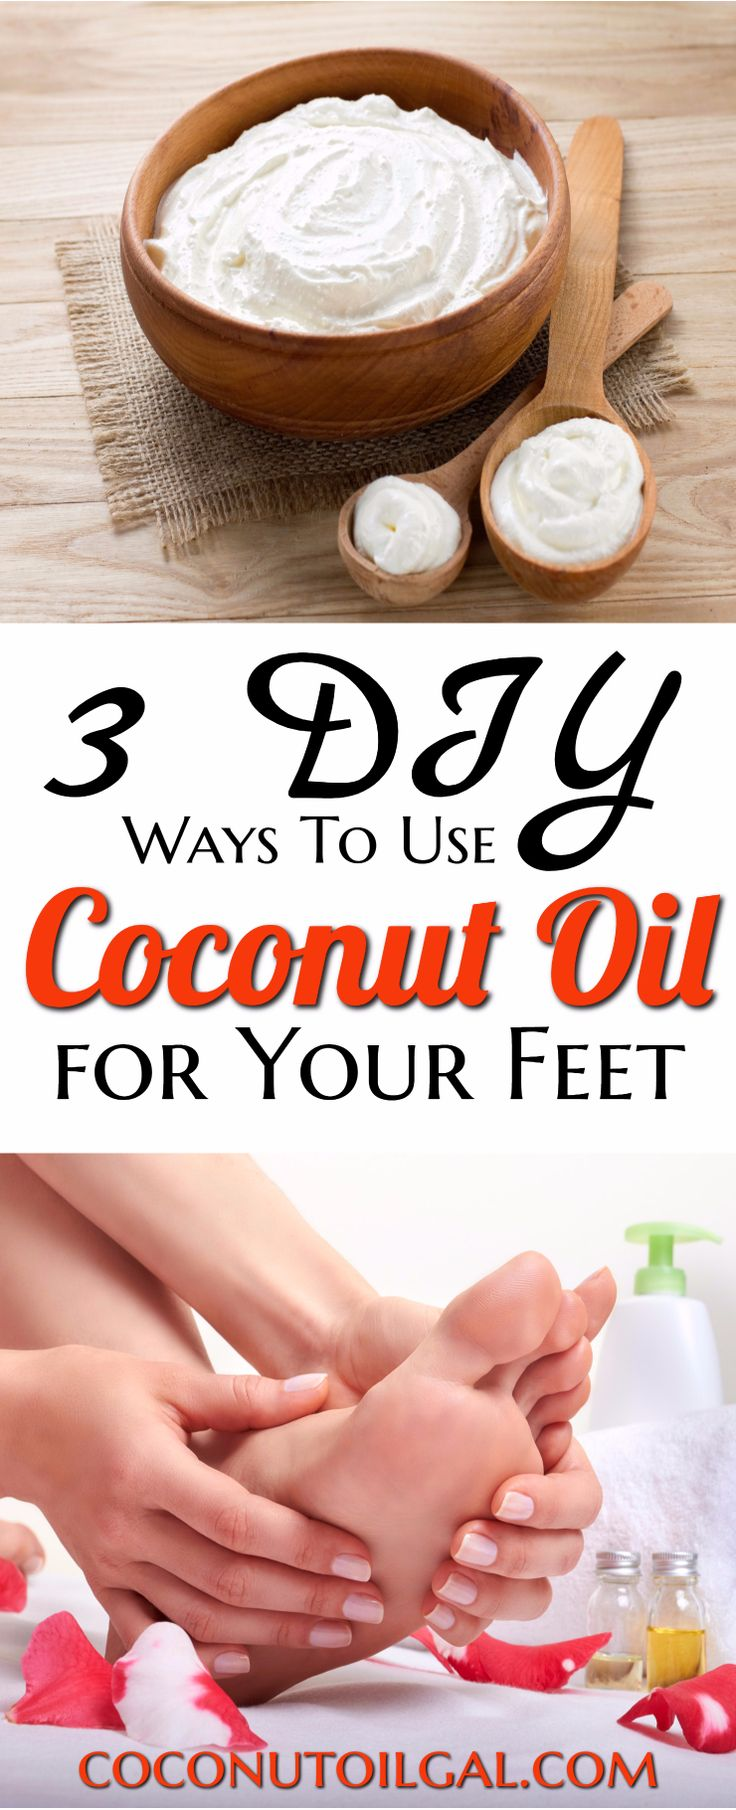 3 DIY coconut oil foot creams that are easy and take no time at all to make. These 3 easy ways to use coconut oil on your feet will help with dry skin, cracking, and fungus. My favorite is the shea butter and coconut oil foot cream!